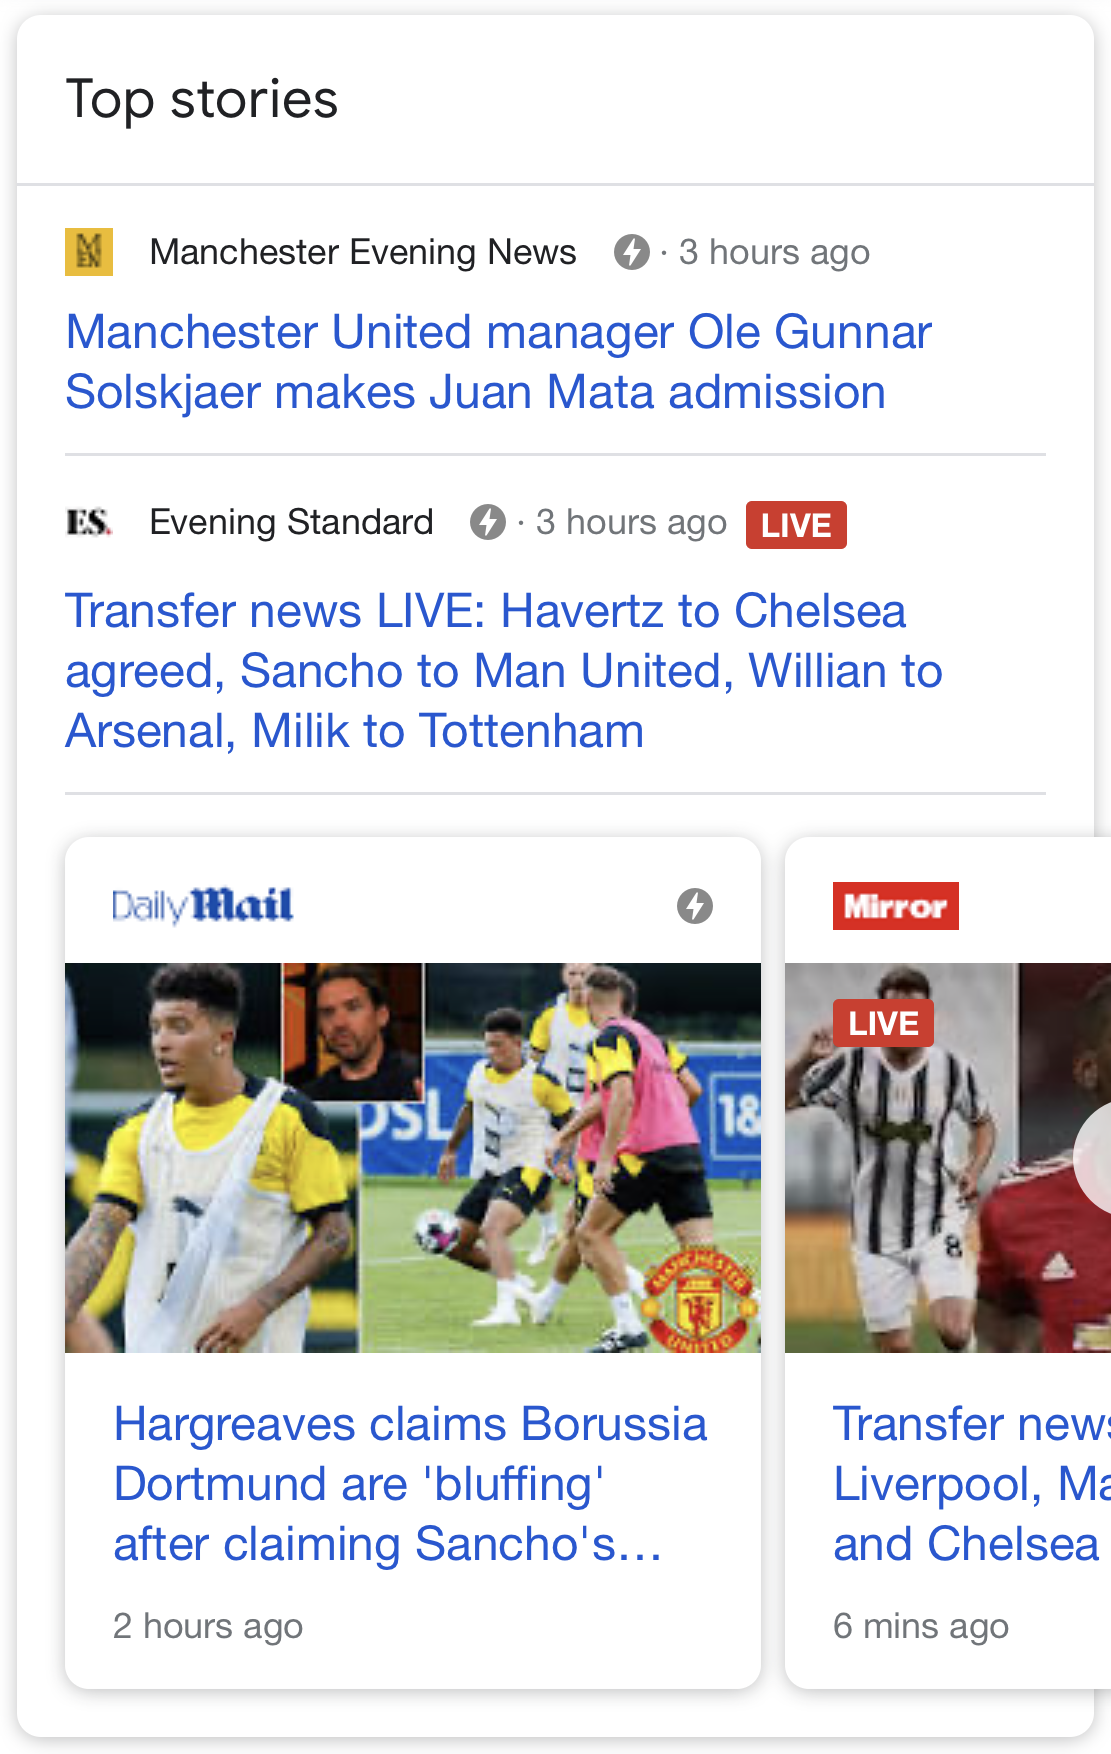 Top Stories Rich Snippet in SERP.